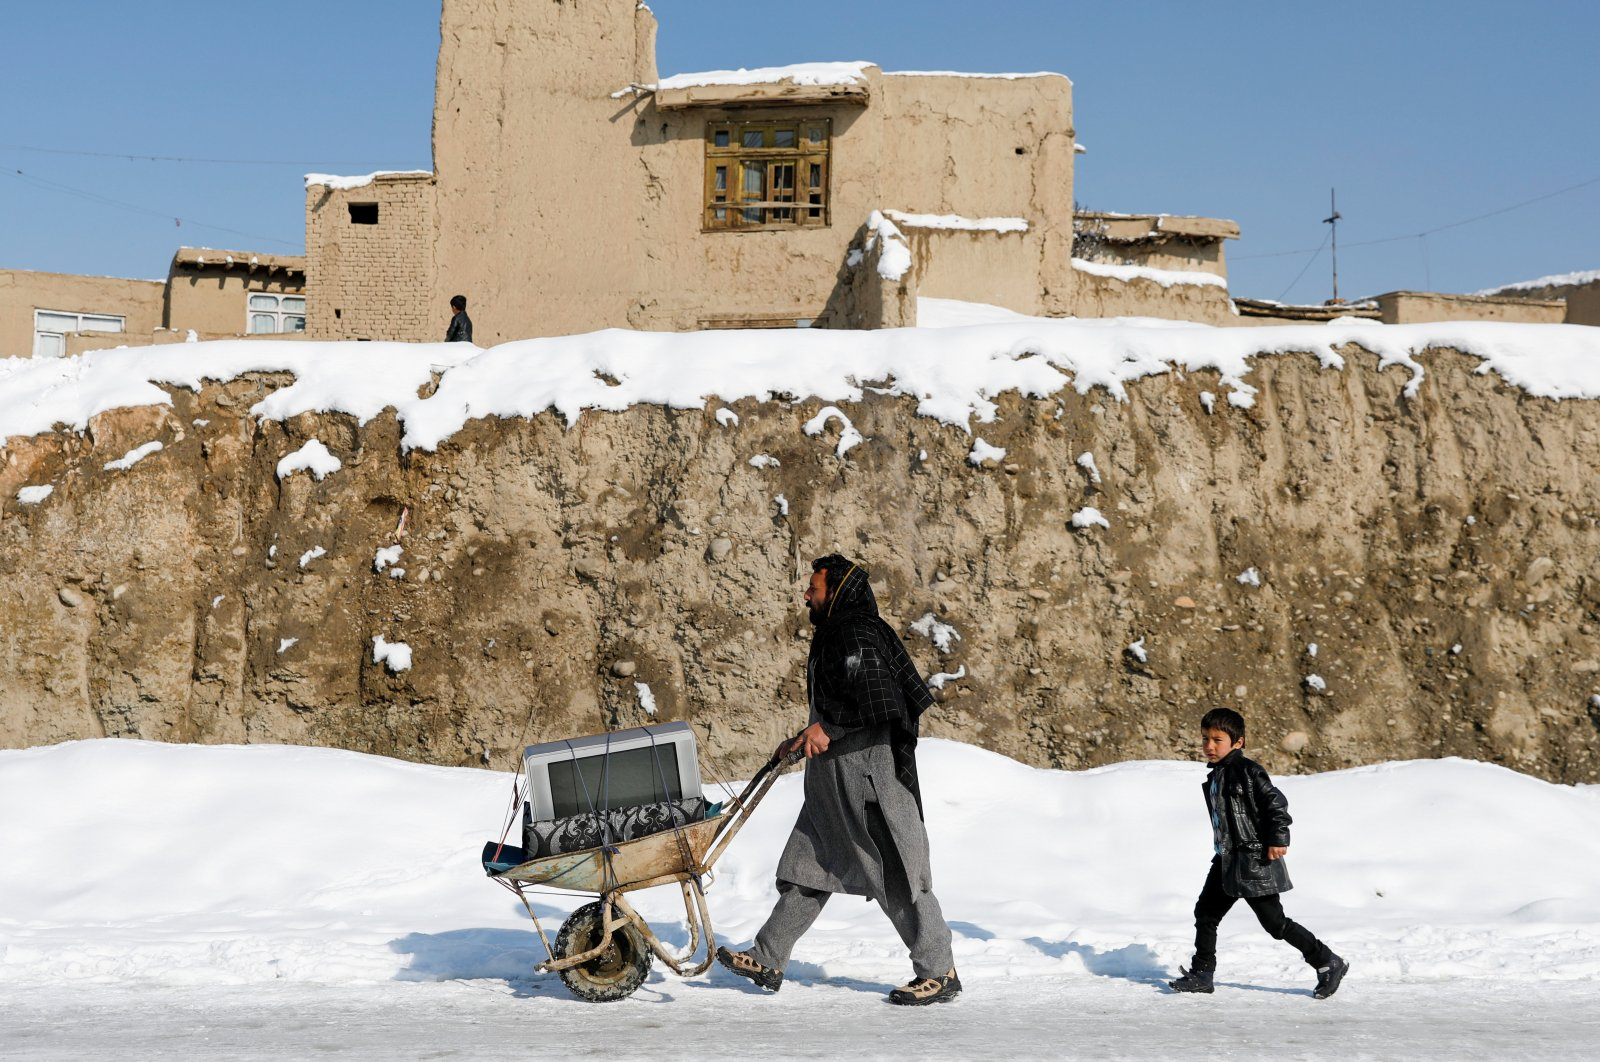 An Afghan man hauls a TV in a cart on a snow-covered street in Kabul, Afghanistan, Jan. 7, 2020. (Reuters Photo)